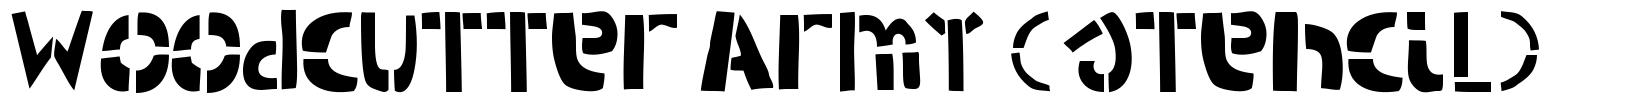 Woodcutter Army (stencil) font